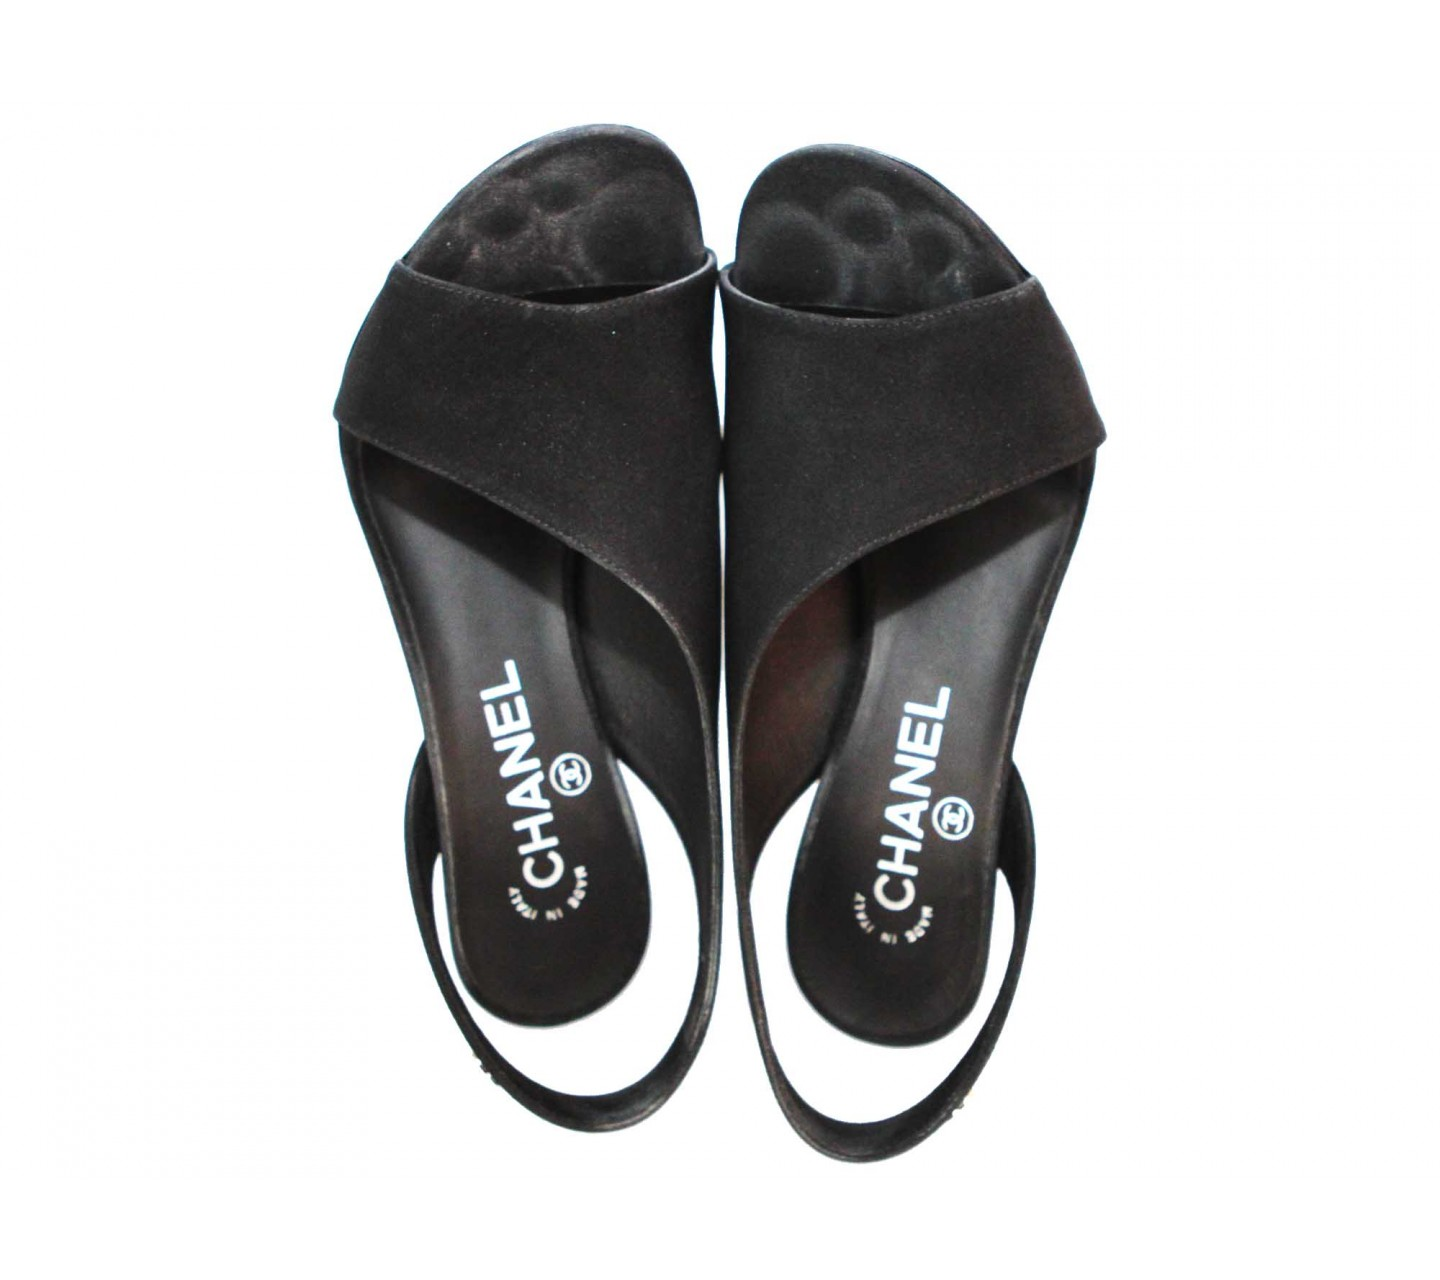 Black sandals chanel